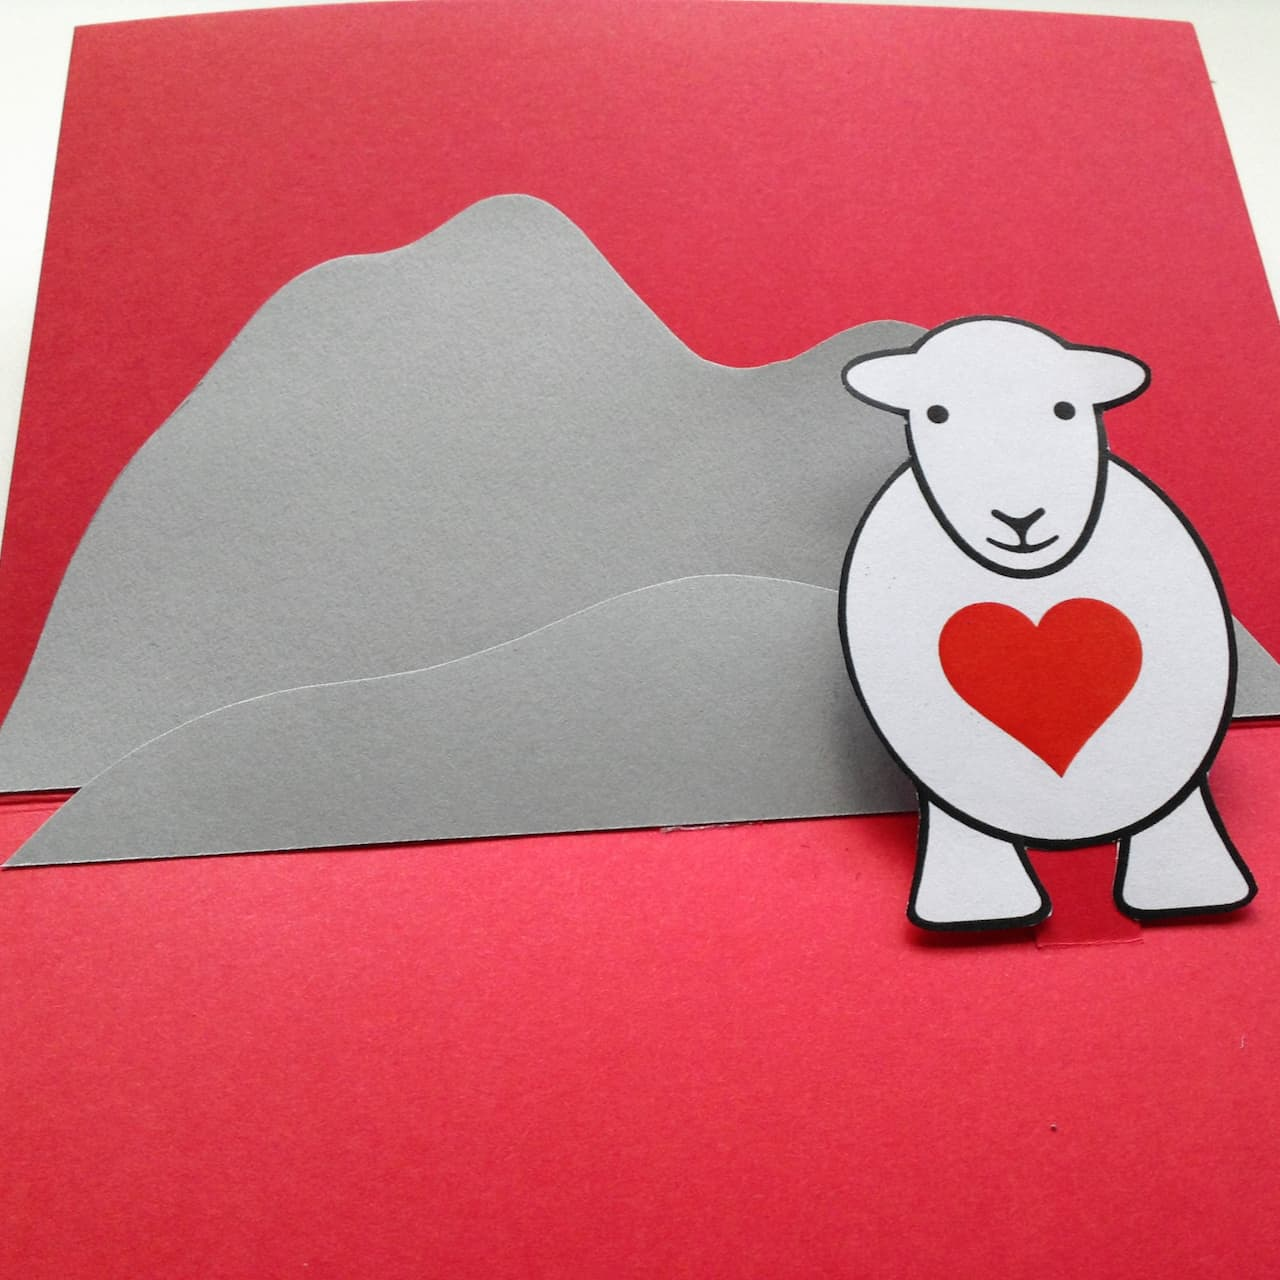 Your Herdy Love Ewe Valentine's Card is complete